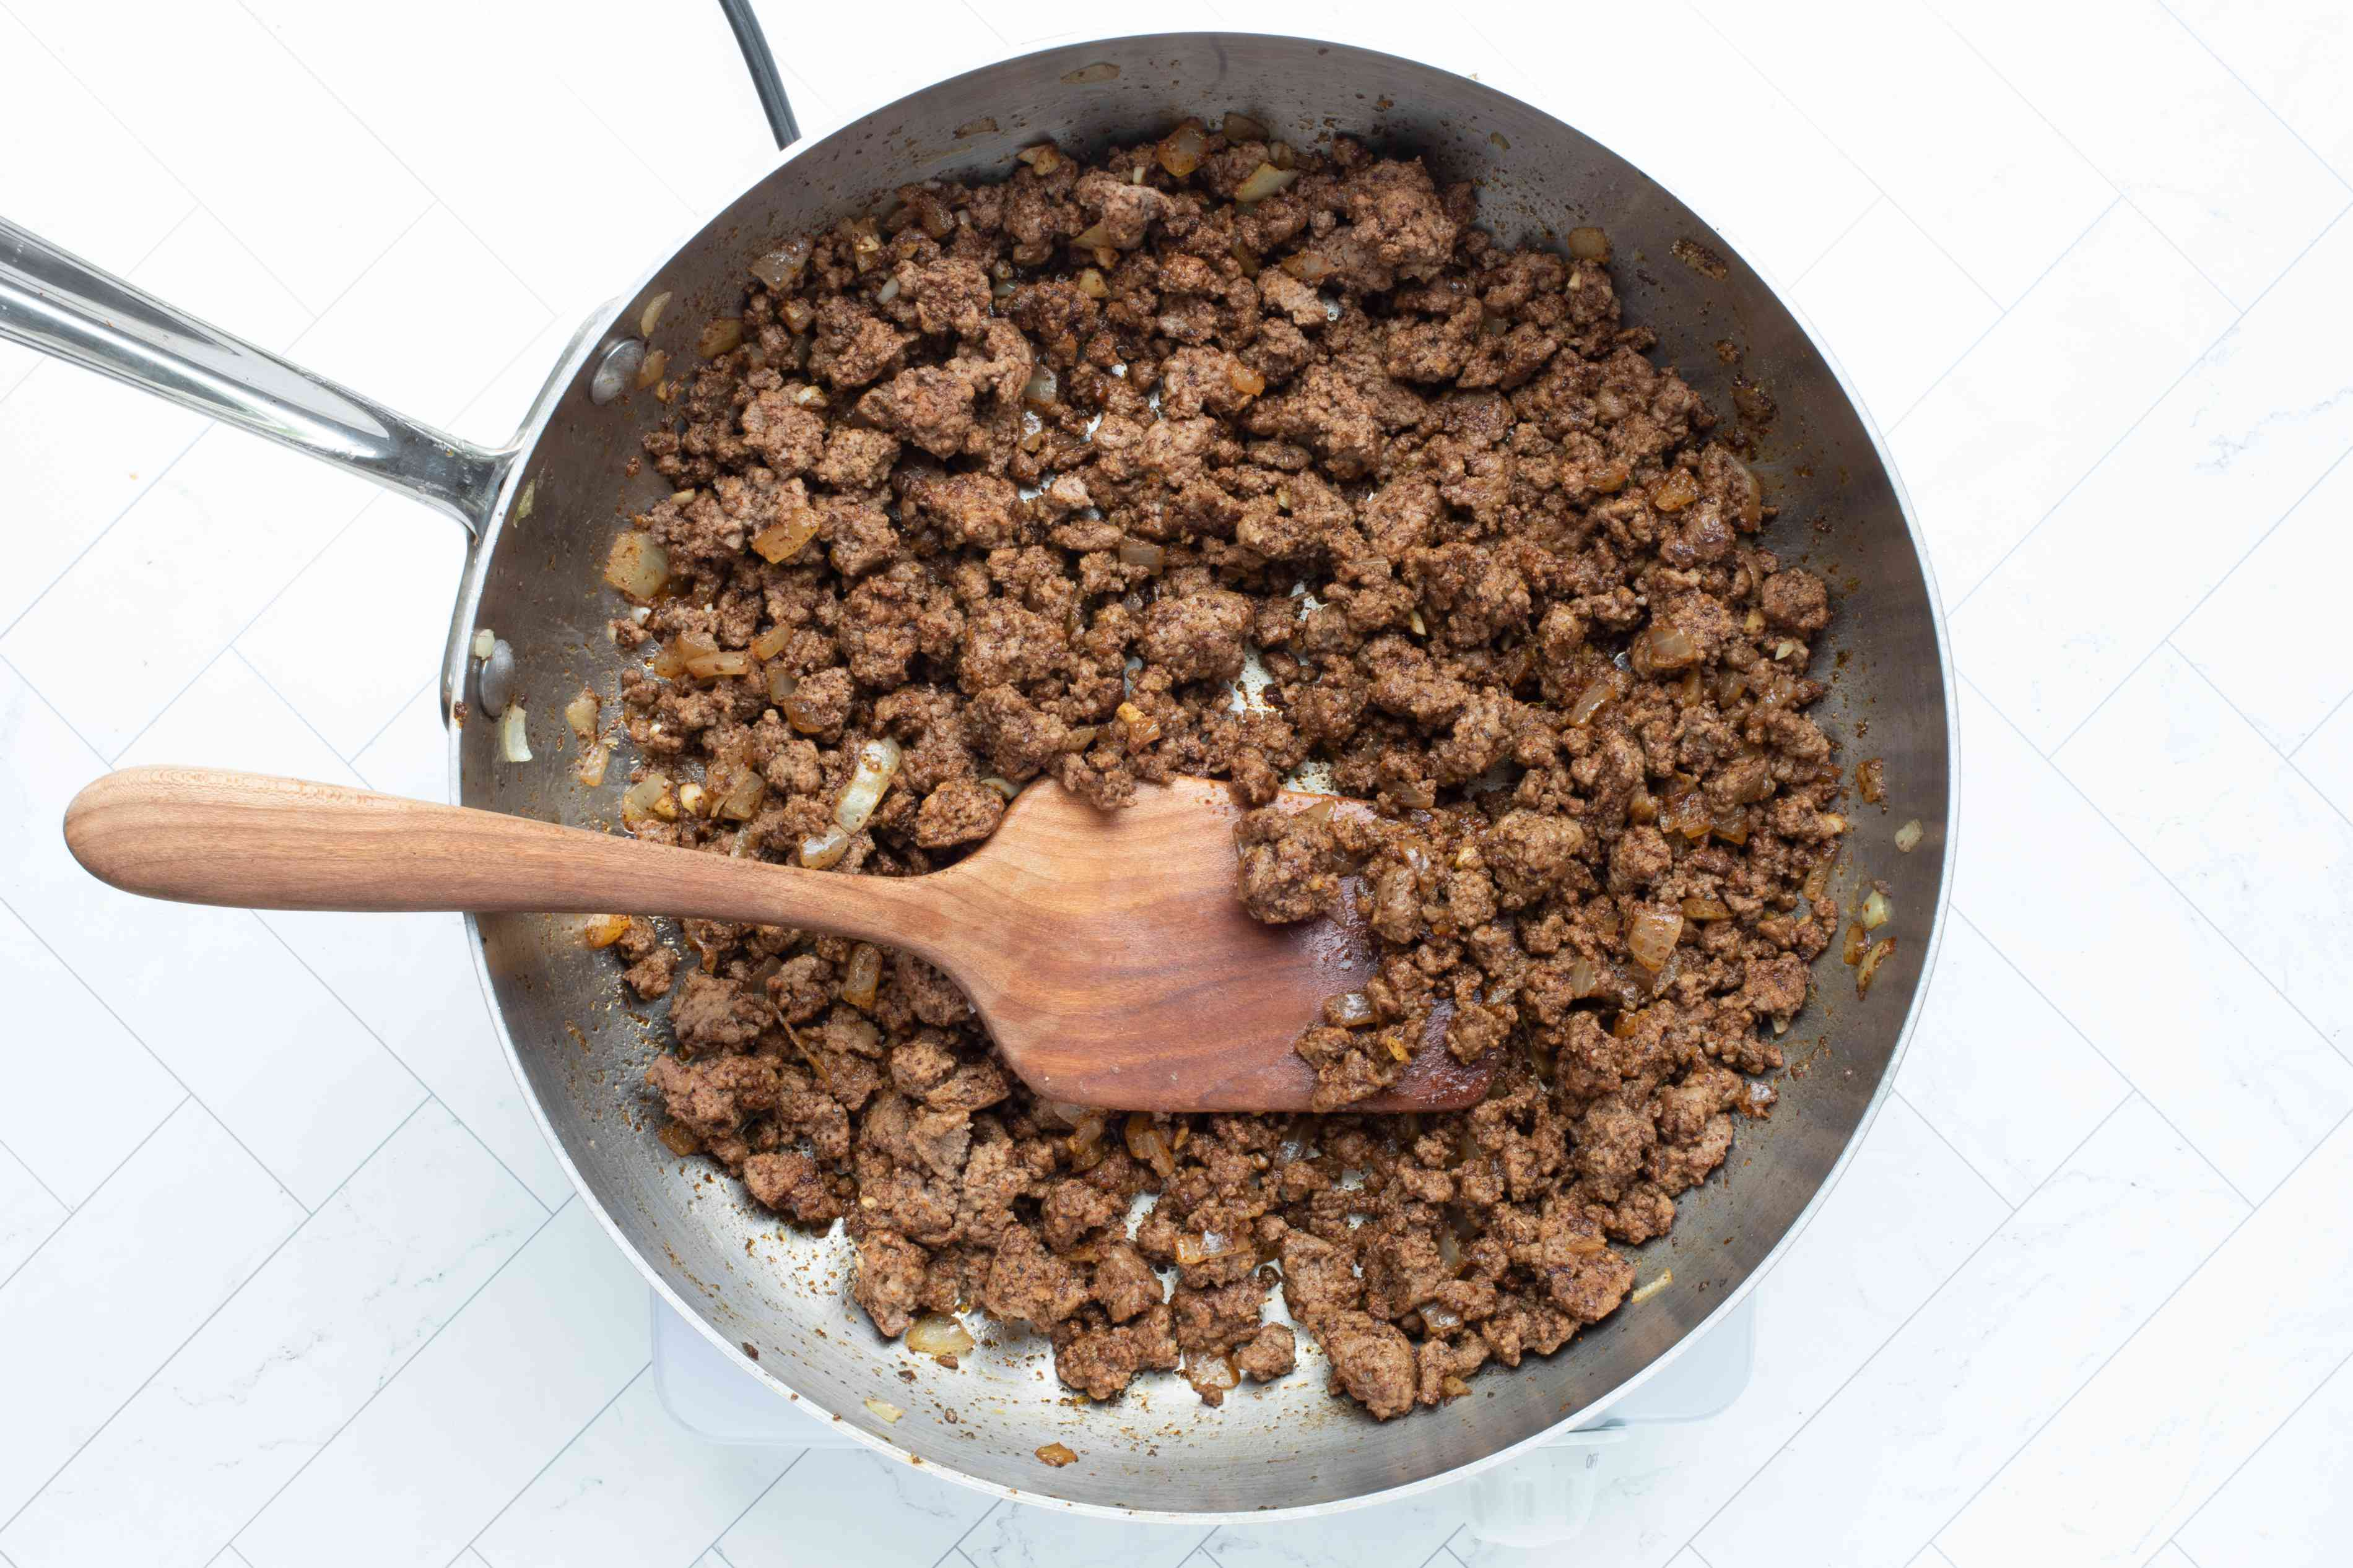 cooking the ground beef for tacos